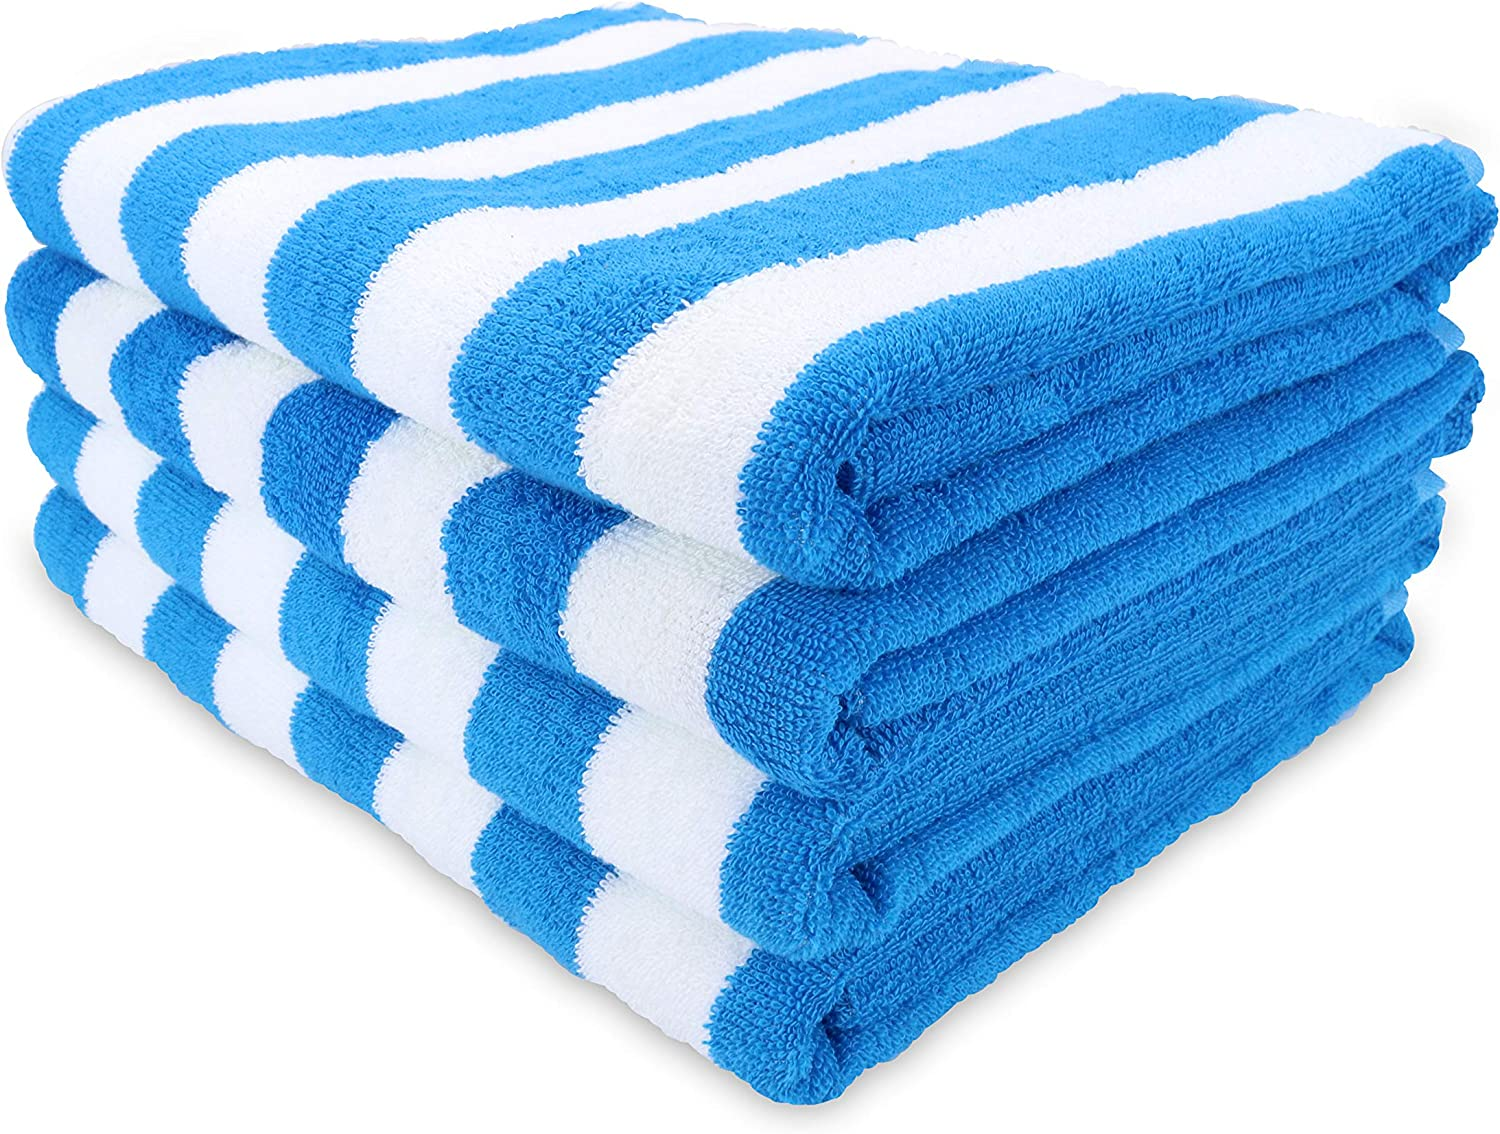 California Cabana Striped Oversized Beach Towel Pack of 4, Ringspun Cotton Double Yarn Strength